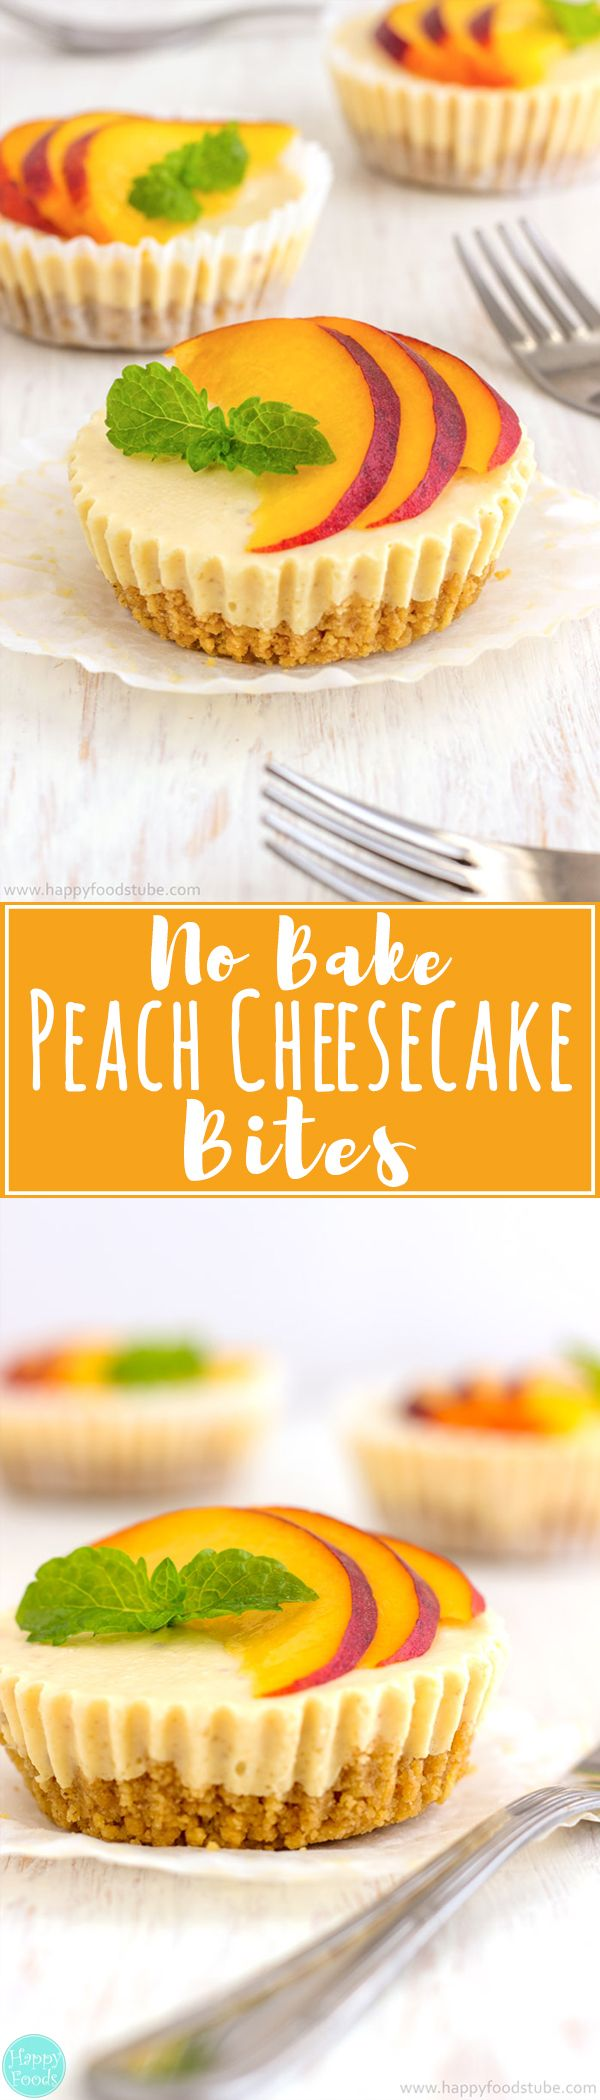 :) No Bake Peach Cheesecake Bites are so delicious party food. Make ahead mini desserts and go fast every time! | happyfoodstube.com | Más en https://lomejordelaweb.es